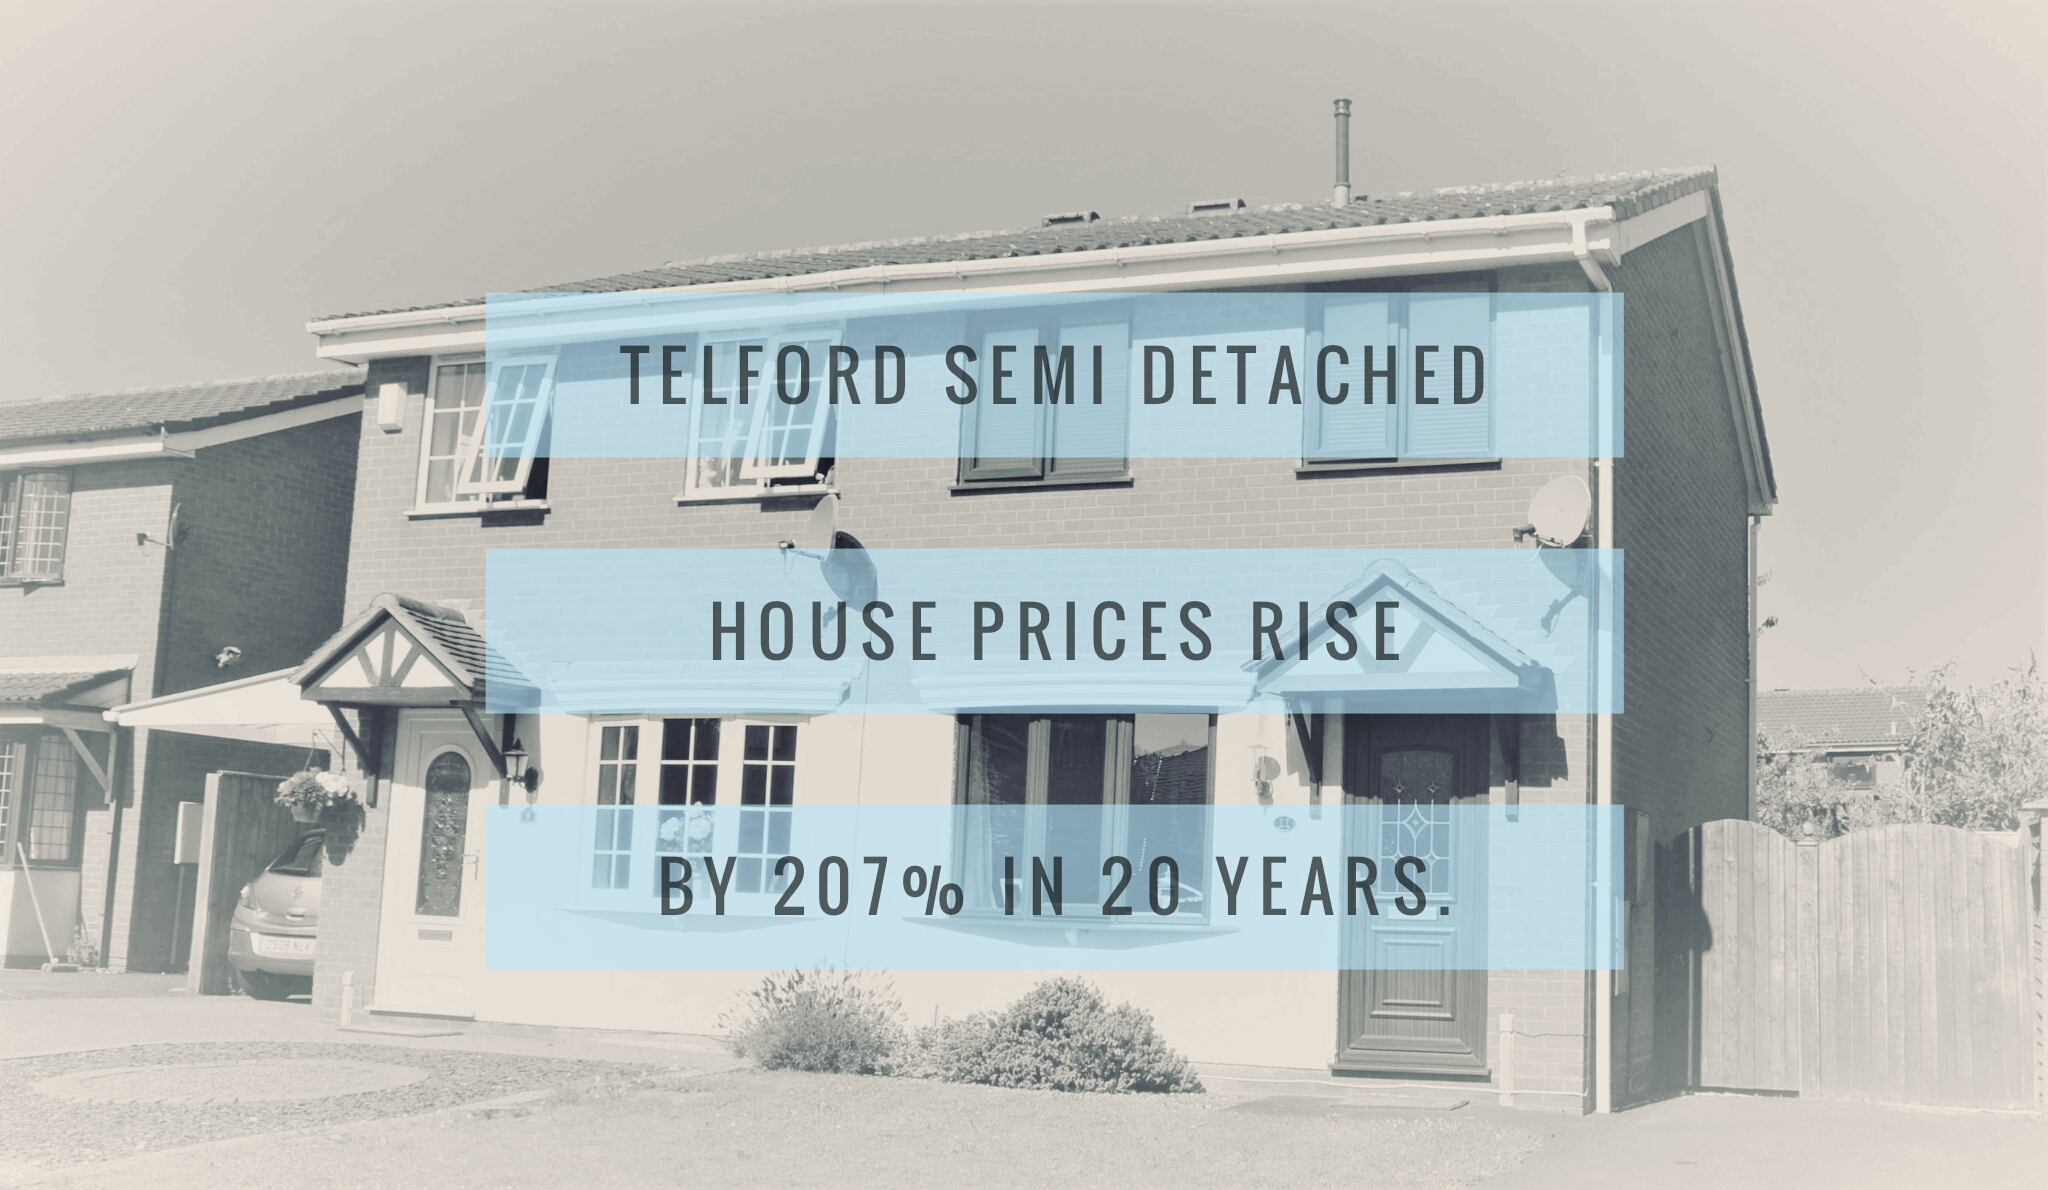 Telford Semi Detached House Prices rise by 207% in 20 years